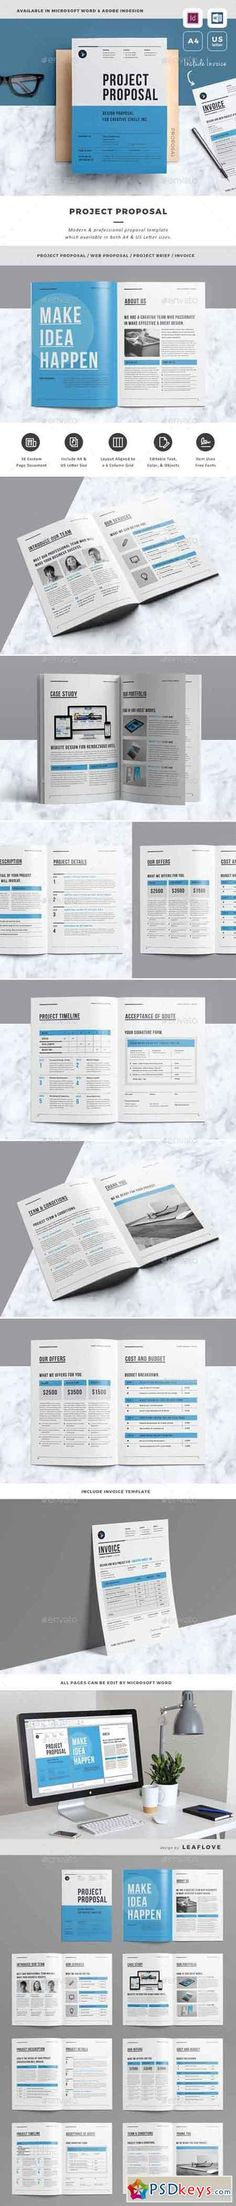 Proposal Proposal templates, Adobe indesign and Letter size - microsoft word proposal template free download